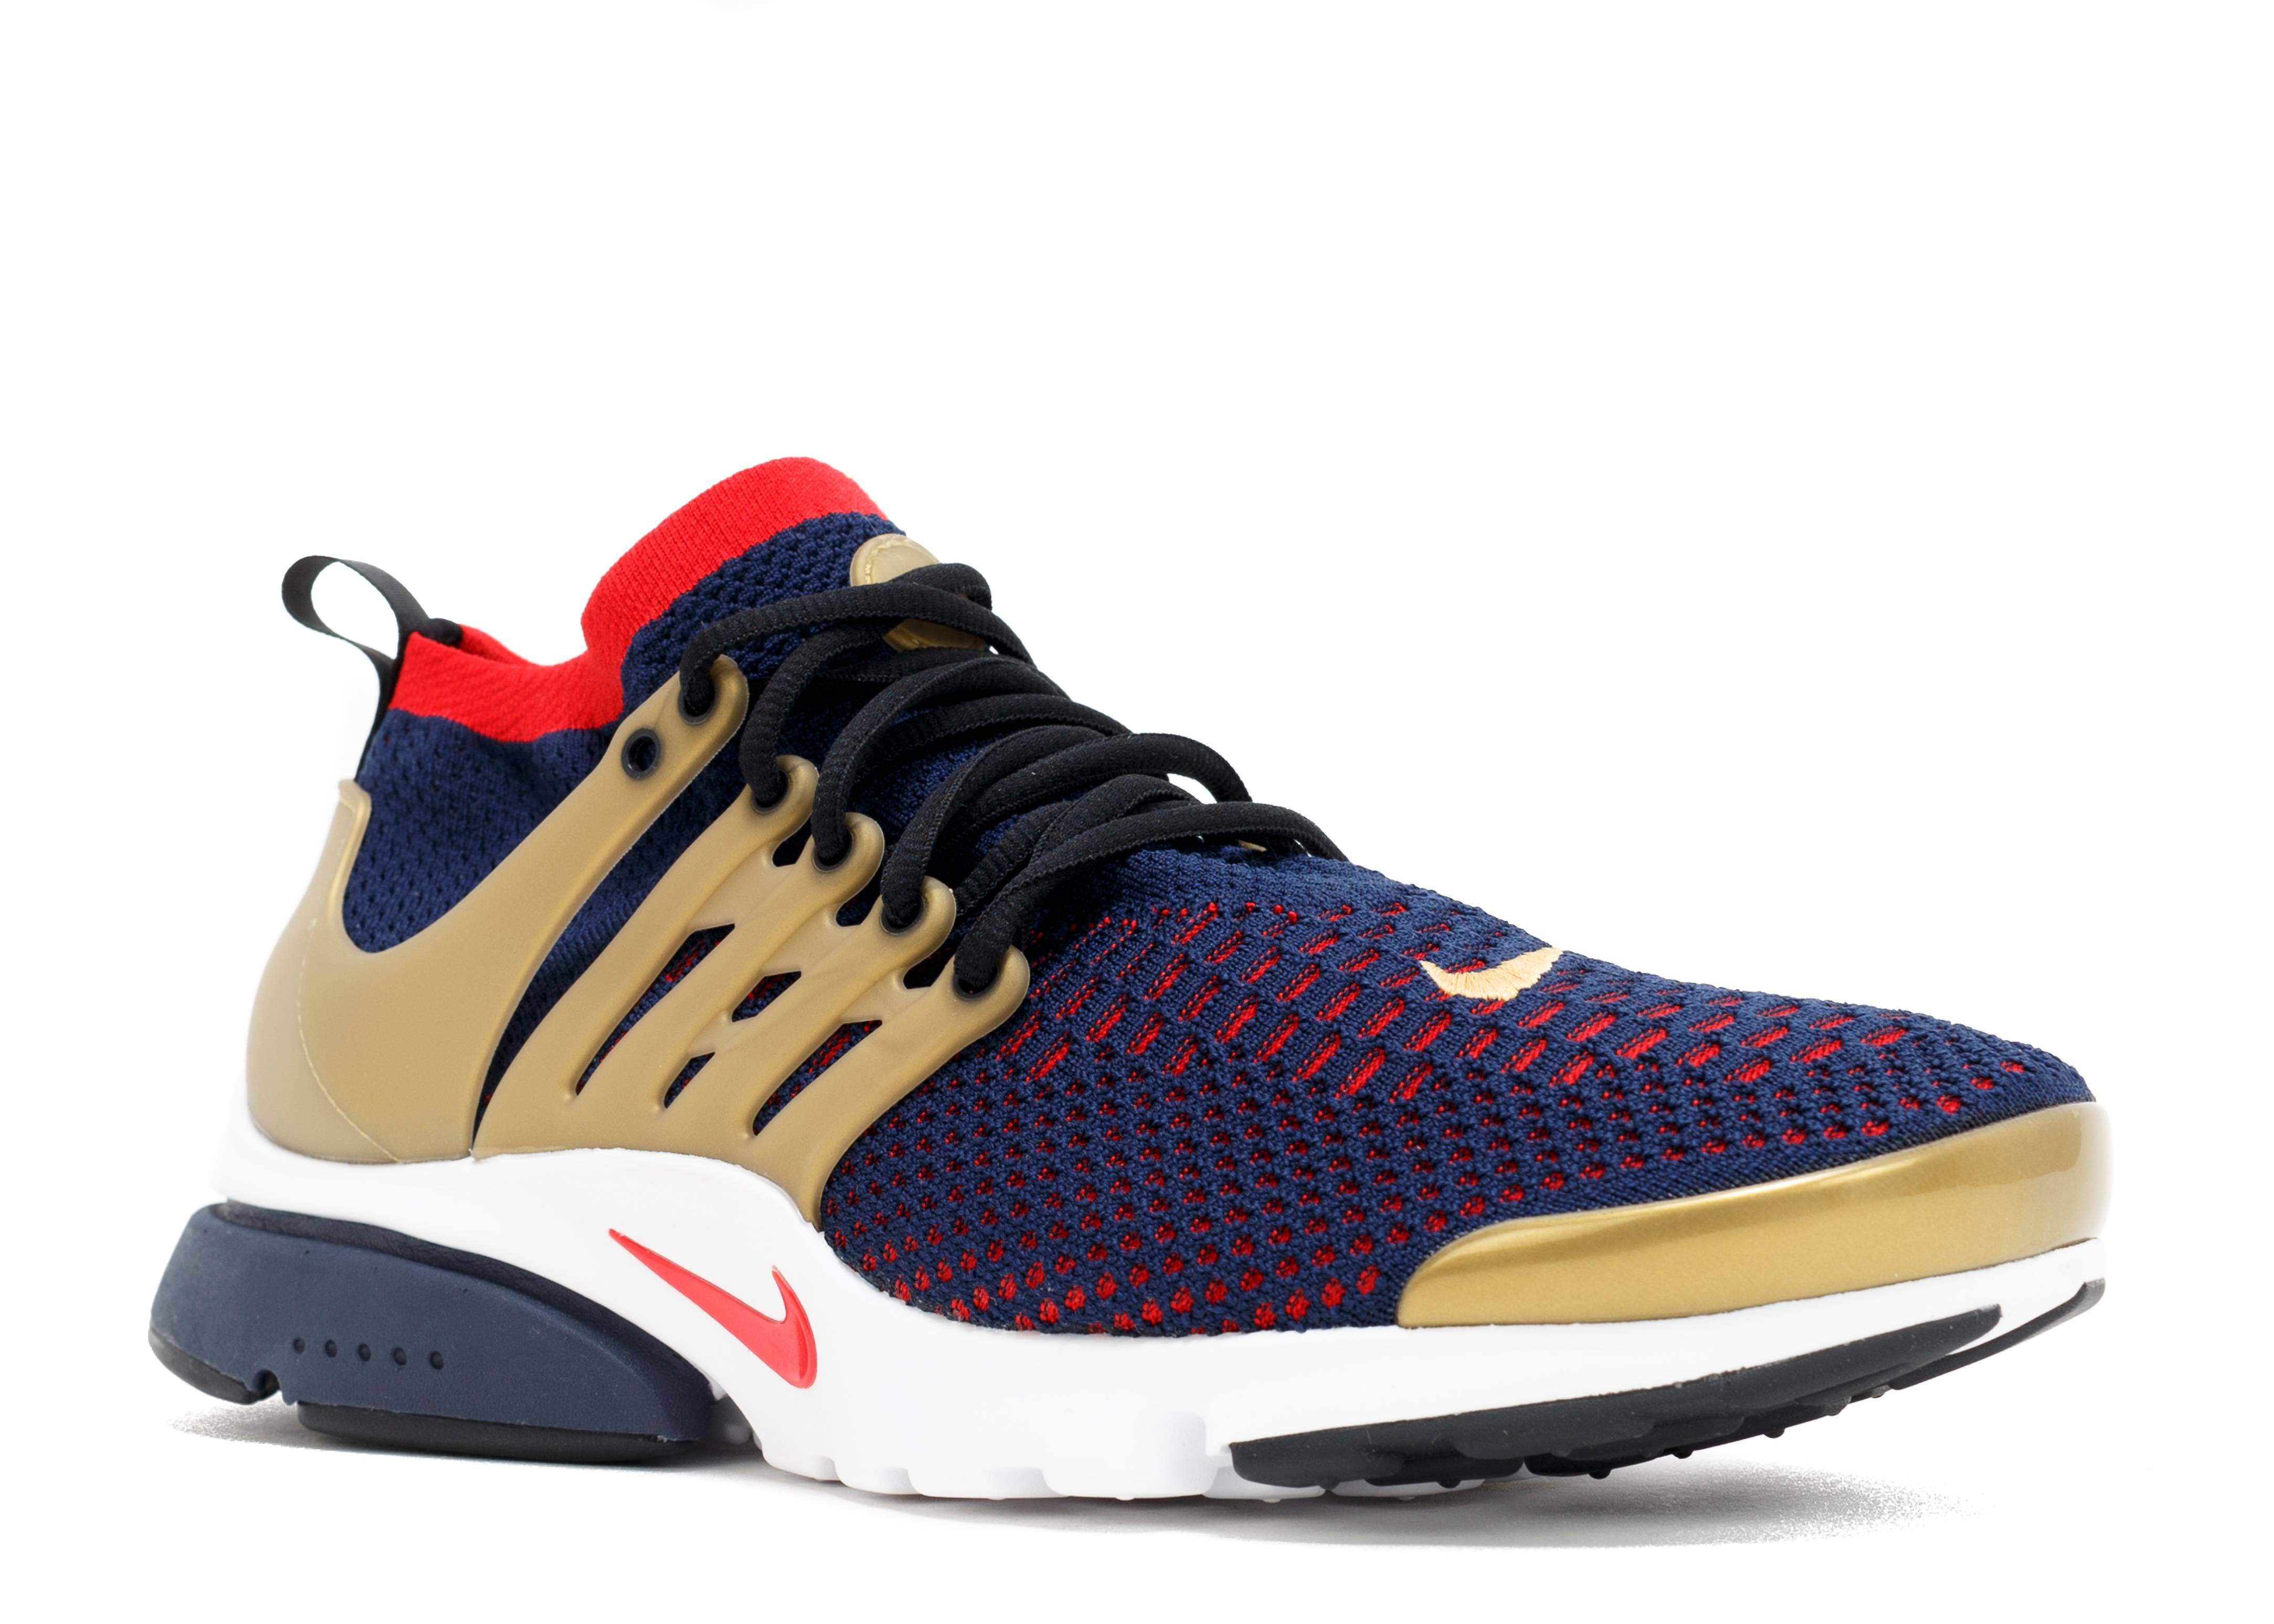 air presto flyknit ultra cllg navy cmt rd mtllc gld wht. Black Bedroom Furniture Sets. Home Design Ideas